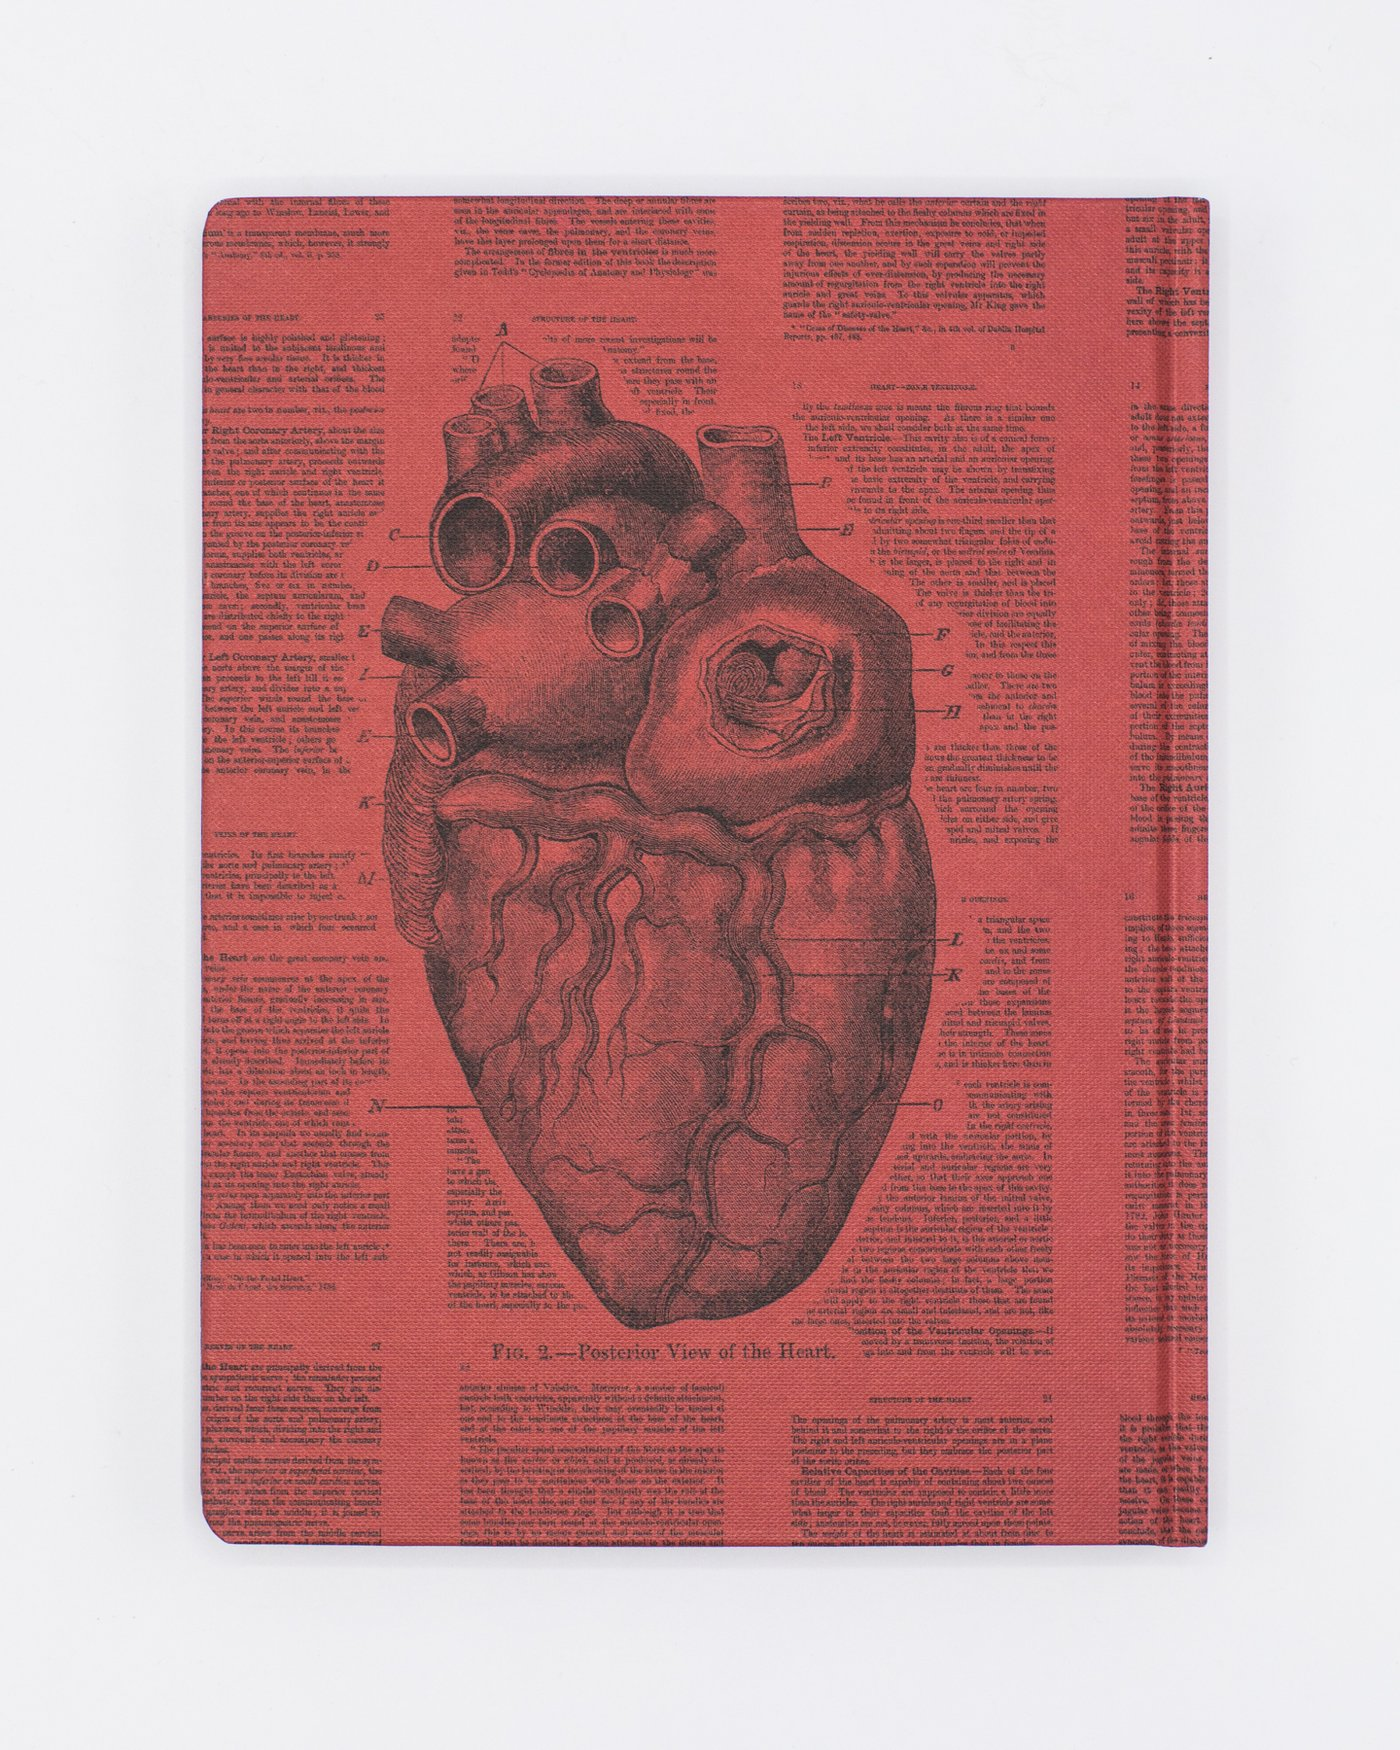 Back cover of Anatomical Heart Notebook